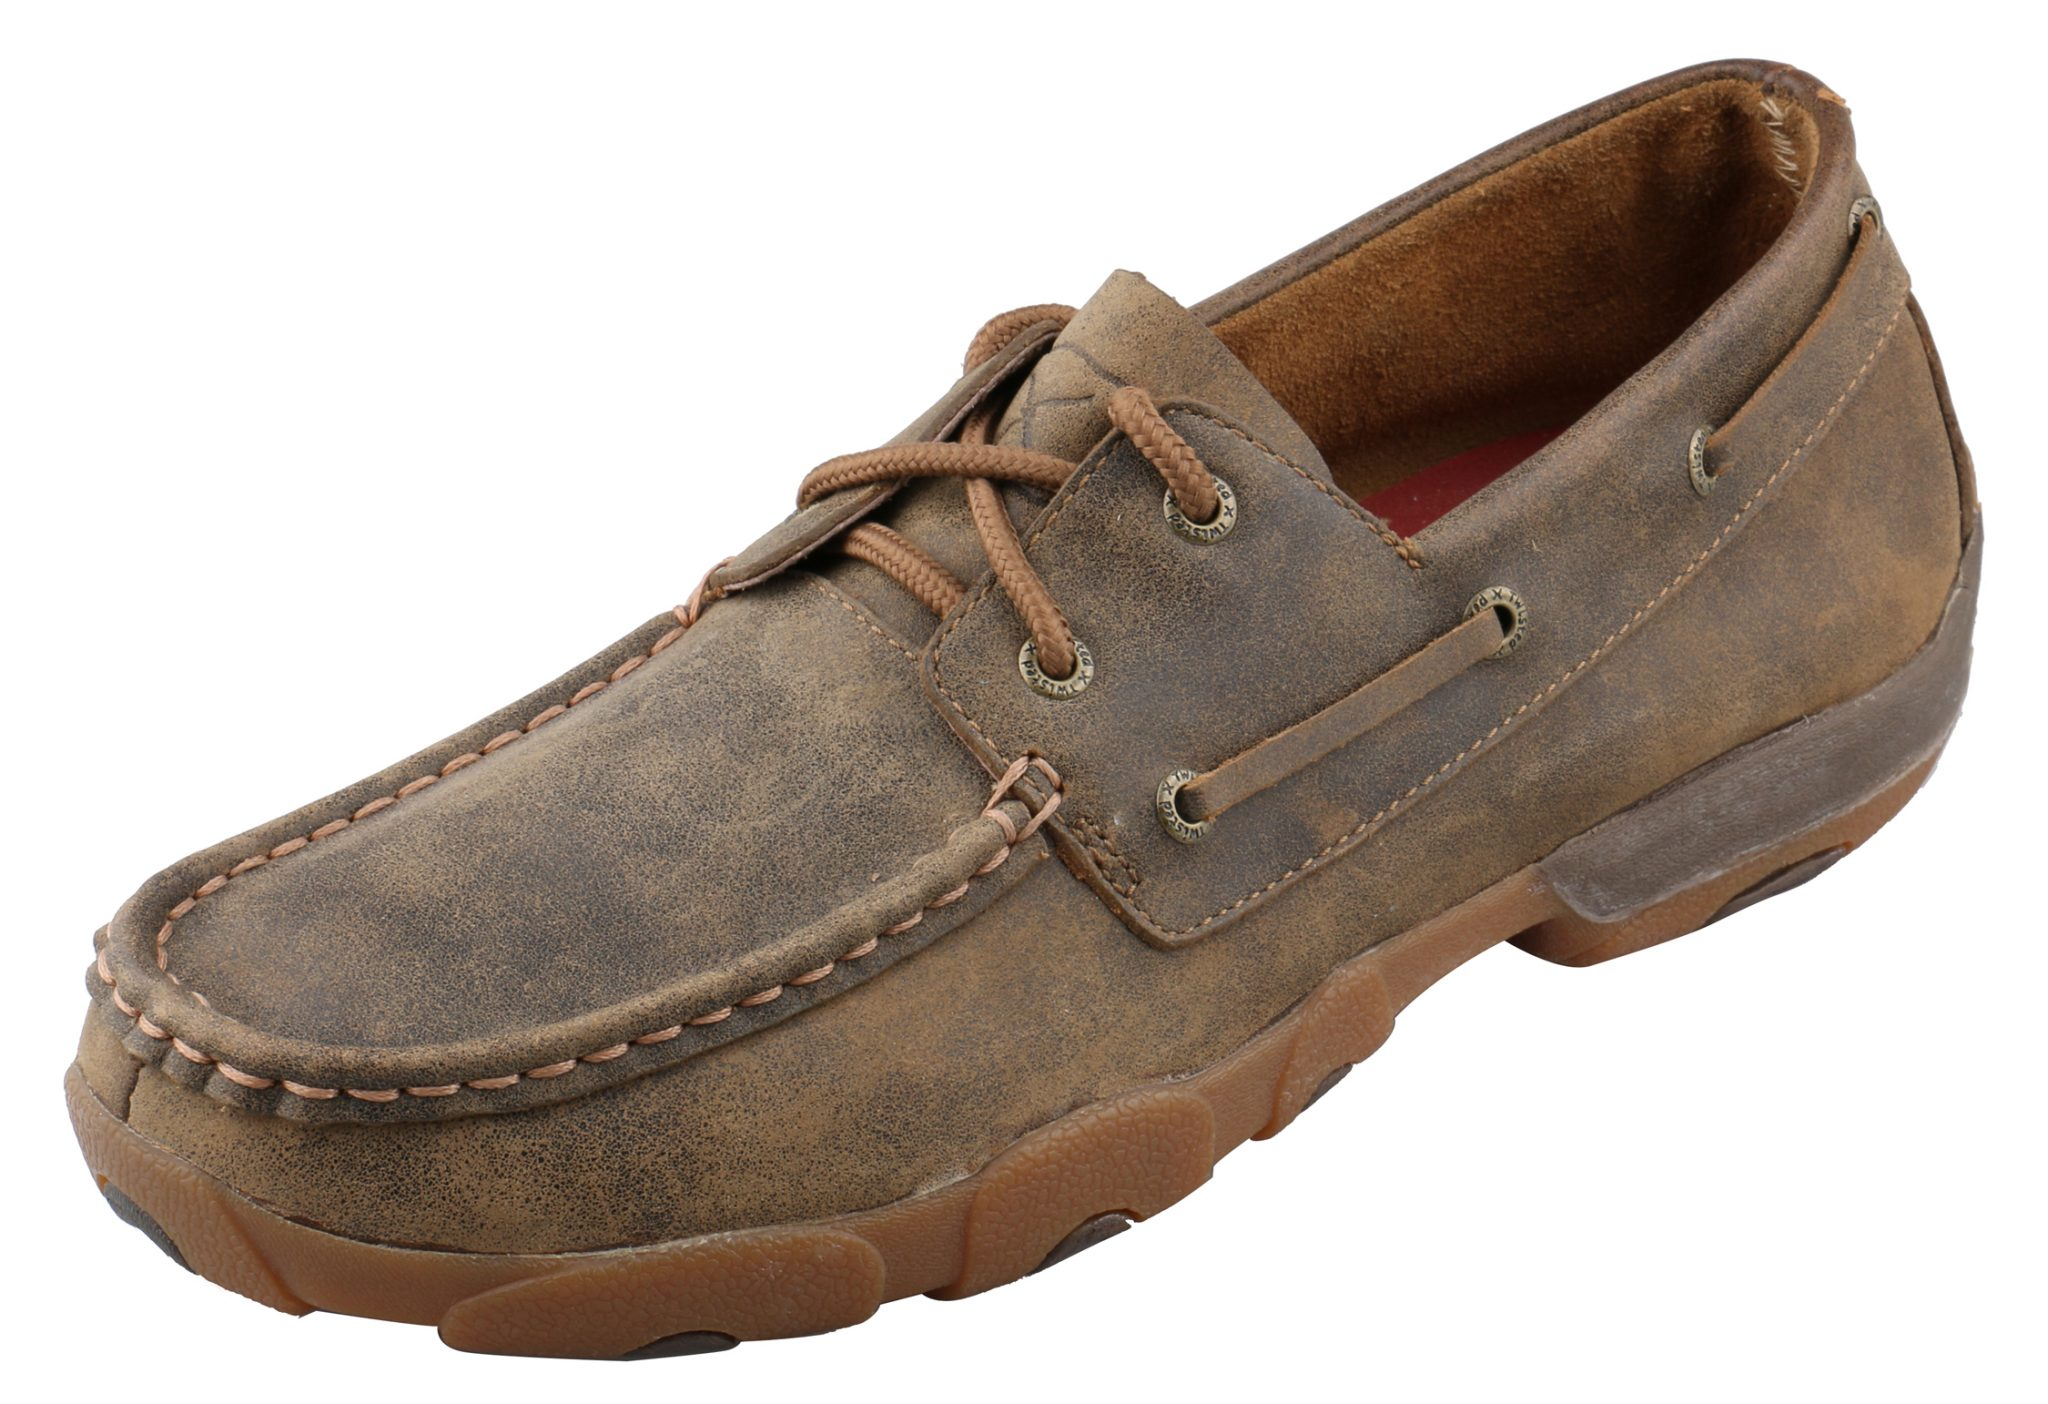 Men39s Twisted X Shoes Bomber Boat Shoe Wood39s Boots